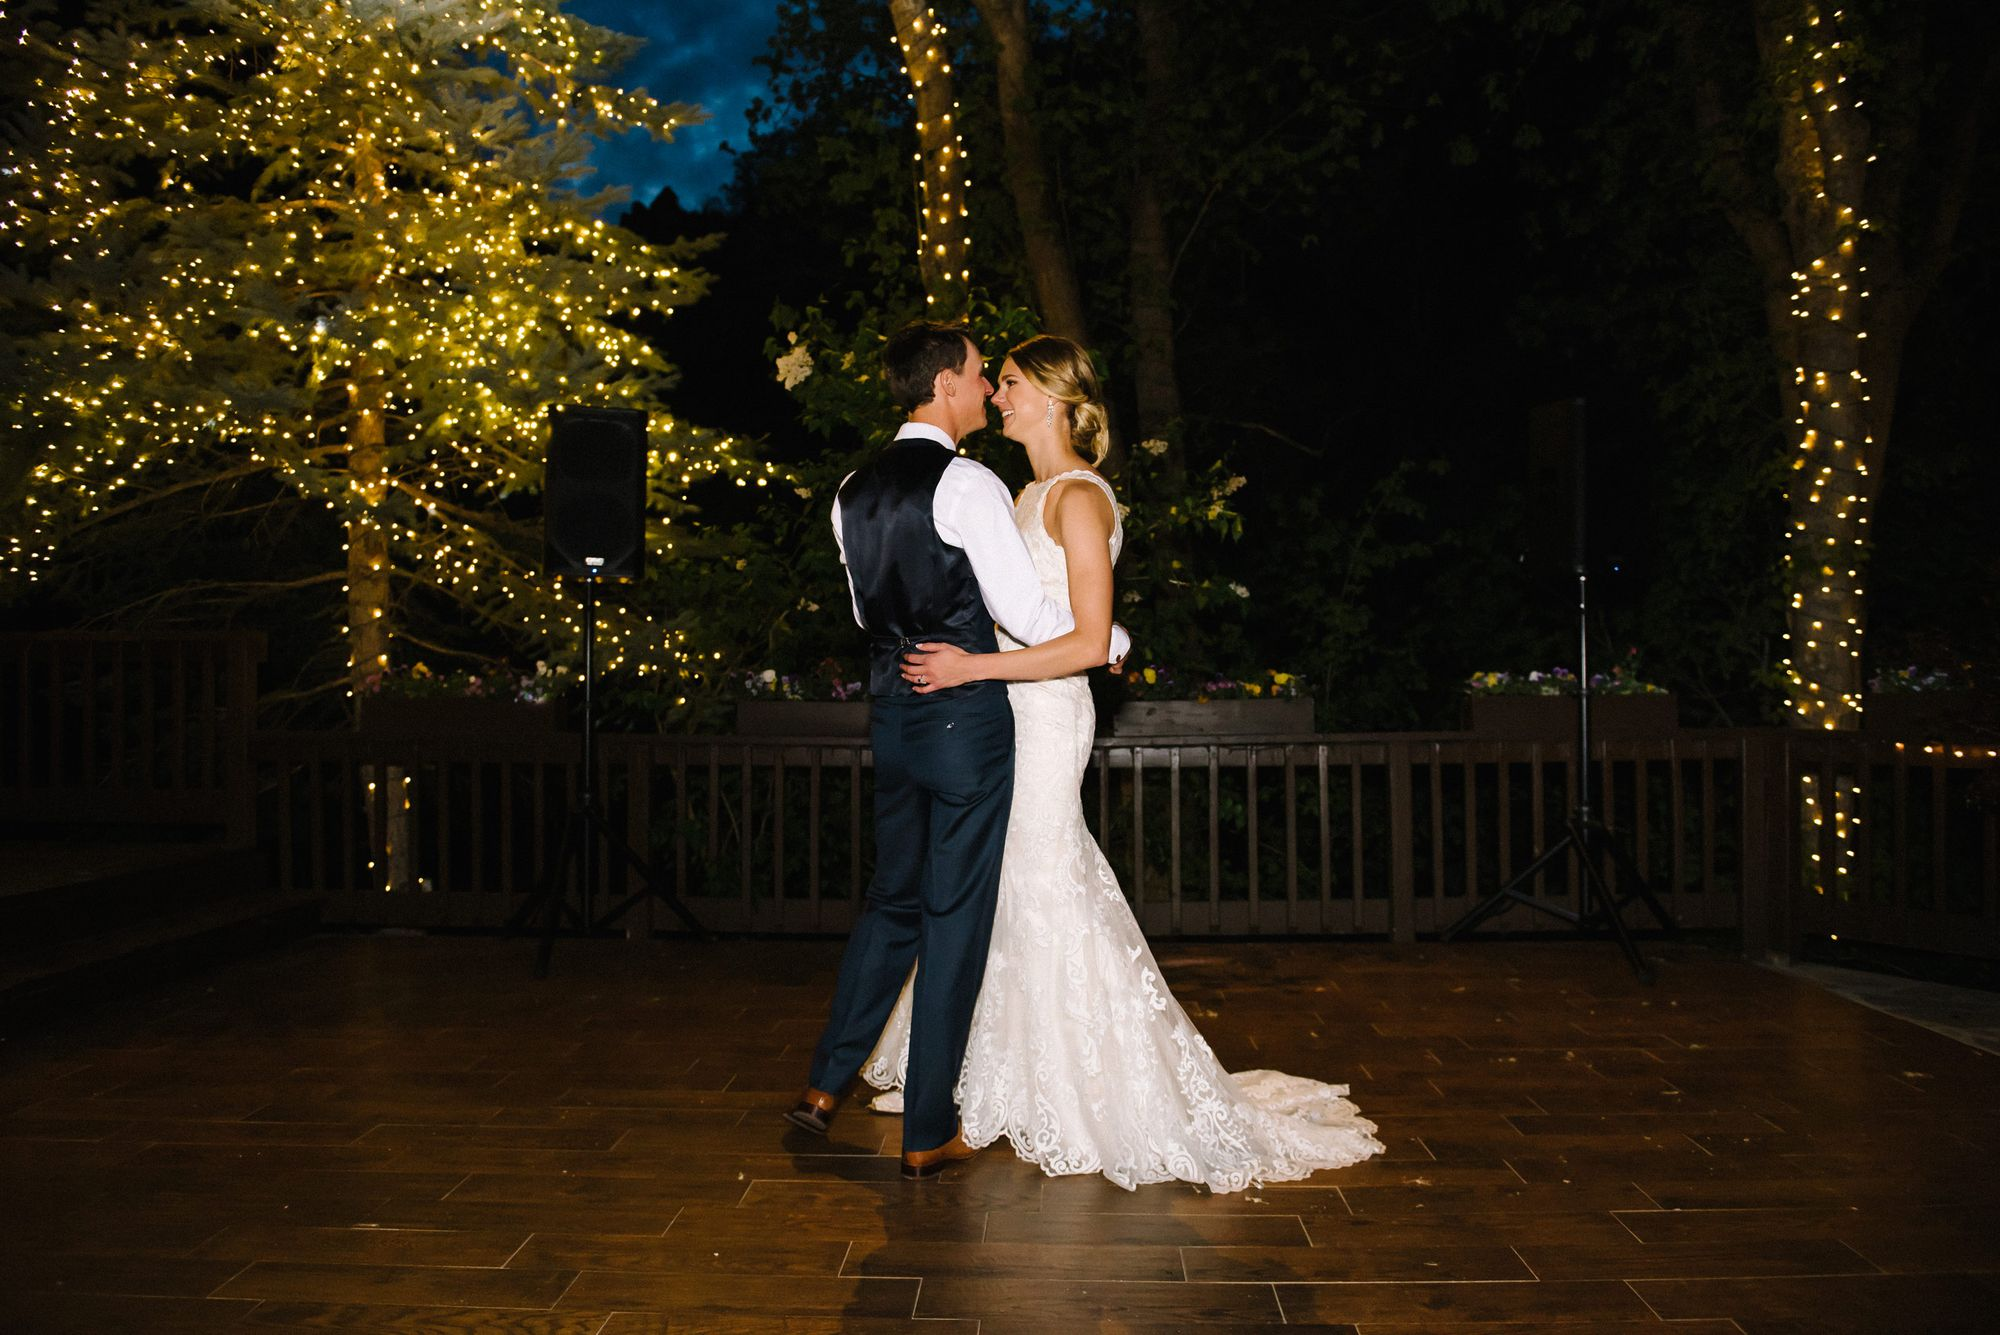 Claire_Scott_Millcreek_Inn_Salt_Lake_City_Utah_Bride_Groom_Dancing_Delicately_Lighted_Trees.jpg